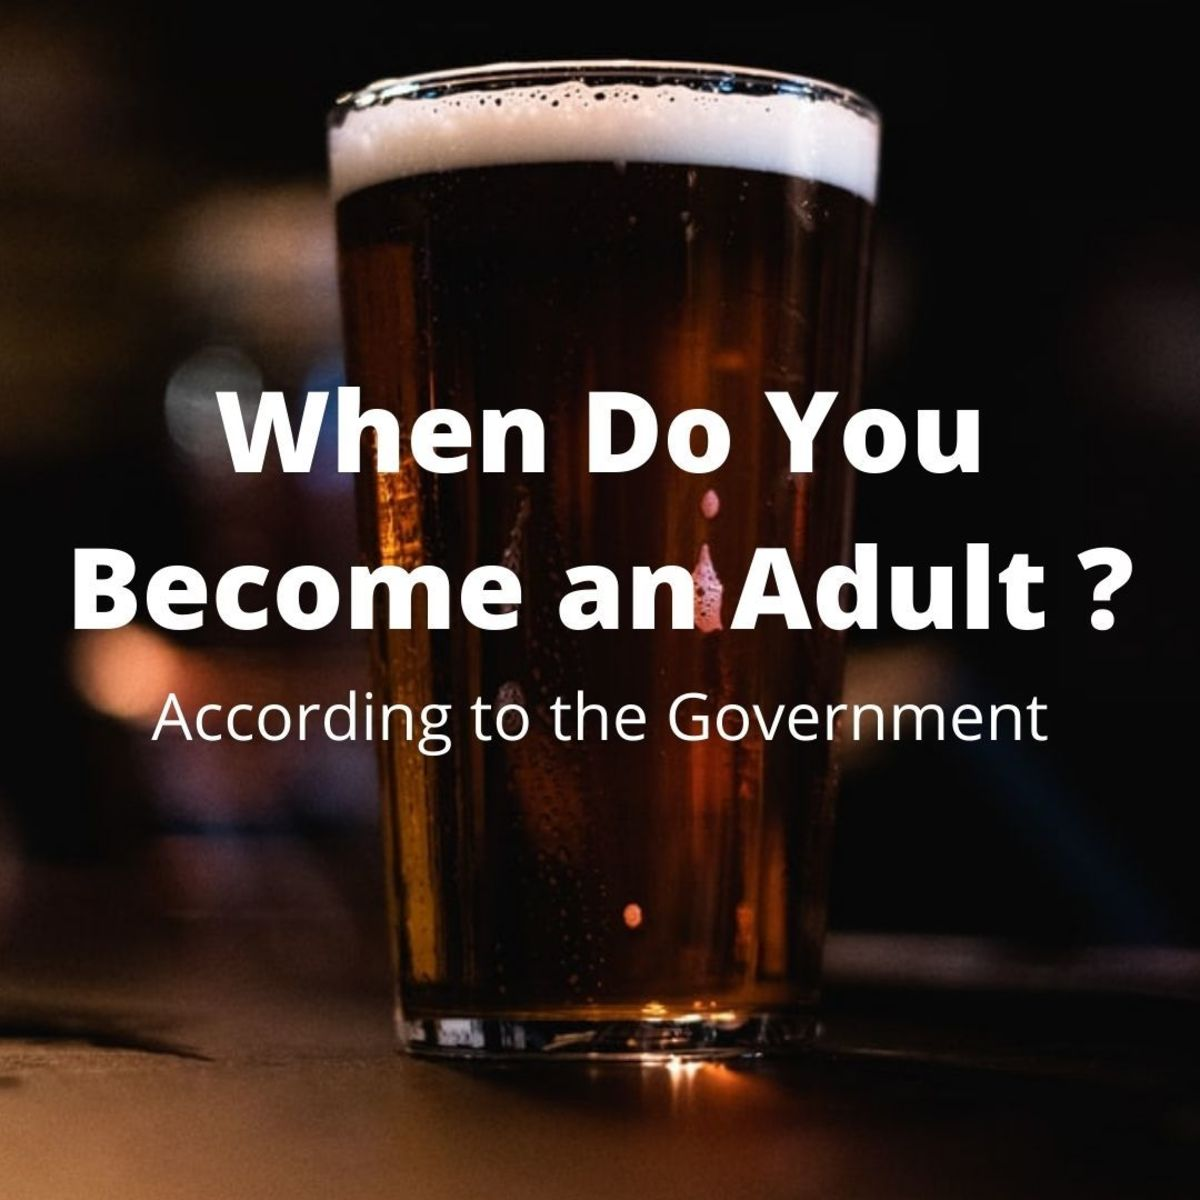 We drive at 16, vote at 18, and drink at 21—so when do we actually become adults?